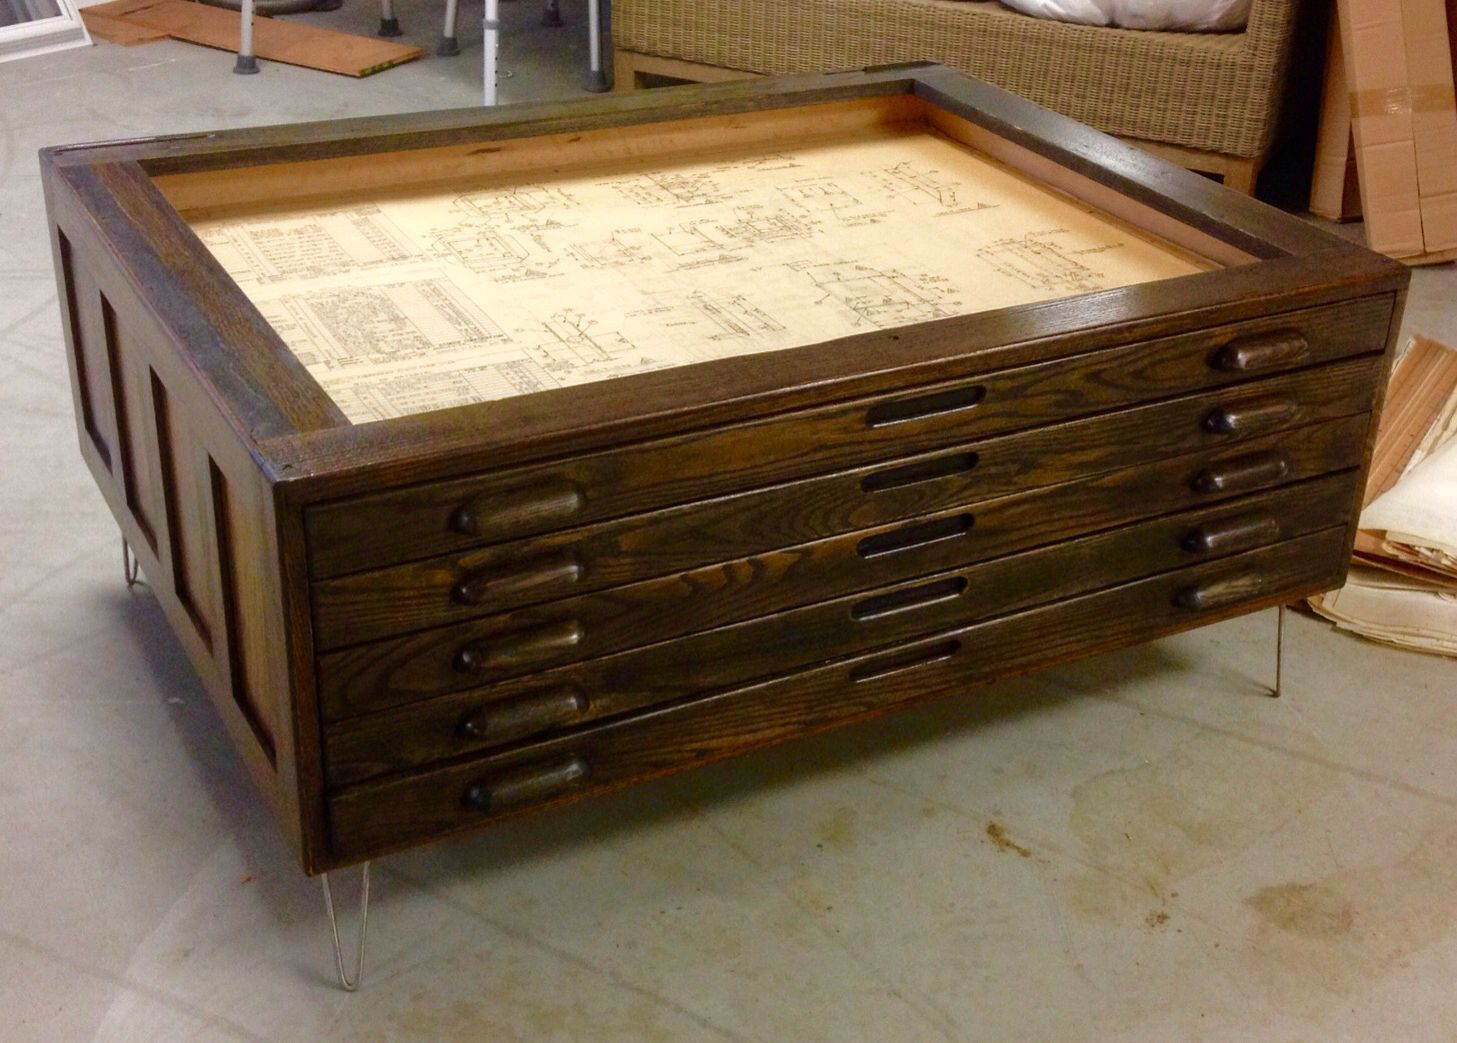 77 Antique Map Cabinet For Corner Kitchen Cupboard Ideas Check More At Http